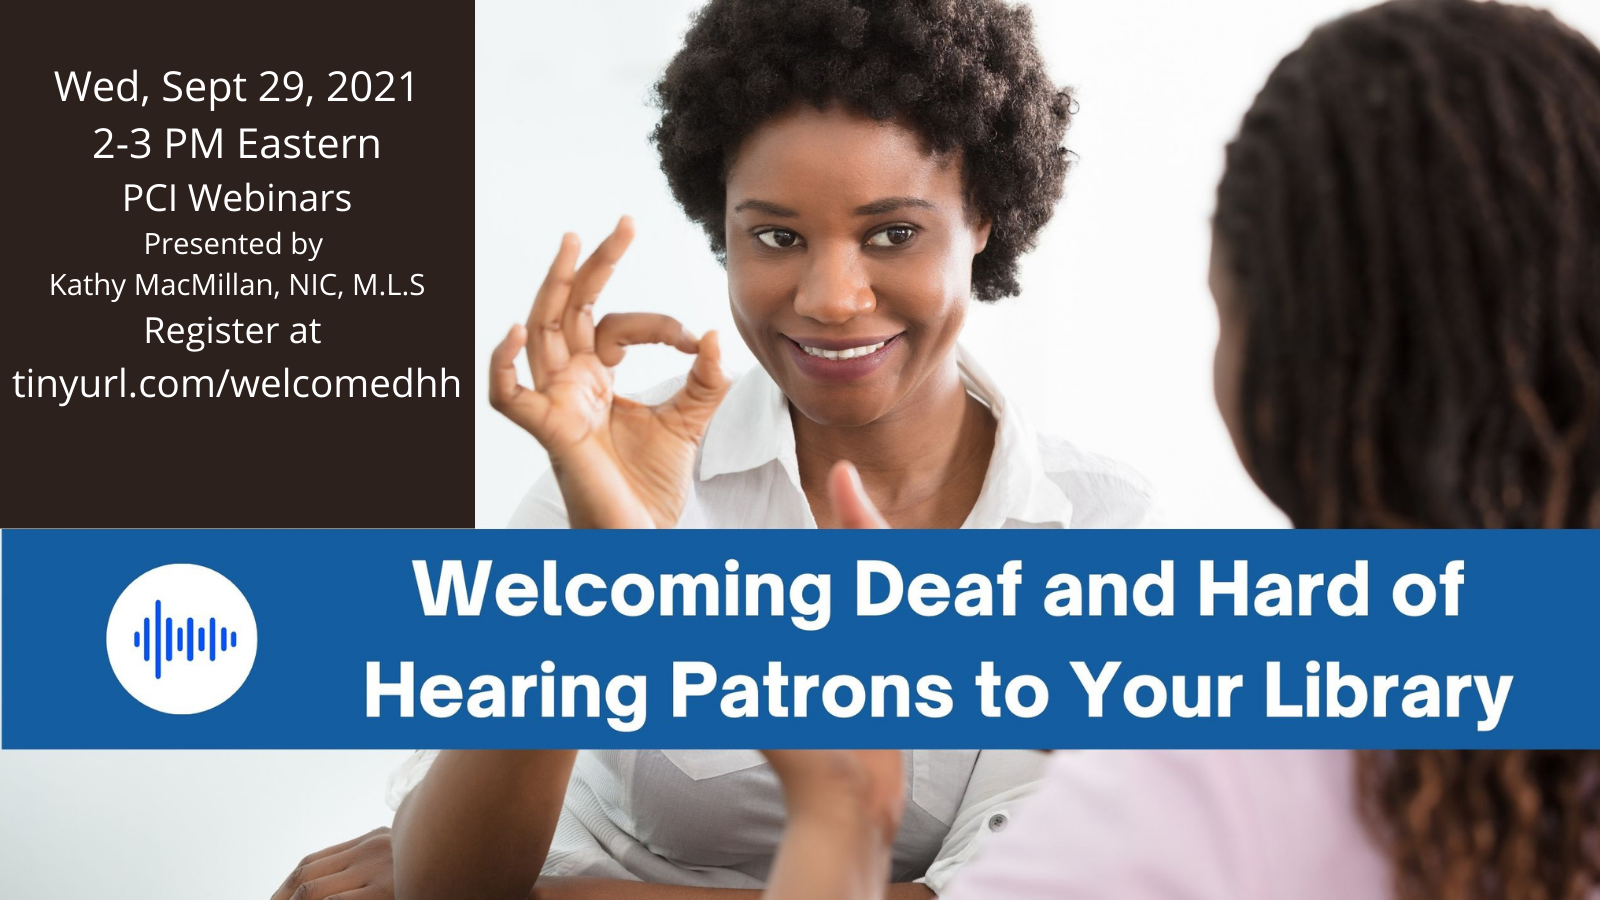 Two Black women sign to each other. The one facing us is signing the letter F in American Sign Language. The following text appears in white over a strip of blue in the middle of the page: Welcoming Deaf and Hard of Hearing Patrons to Your Library. In the upper left corner, a black box appears with the following text in white: Wed, Sept 29, 2021, 2-3 PM Eastern. PCI Webinars. Presented by Kathy MacMillan, NIC, M.L.S. Register at tinyurl.com/welcomedhh